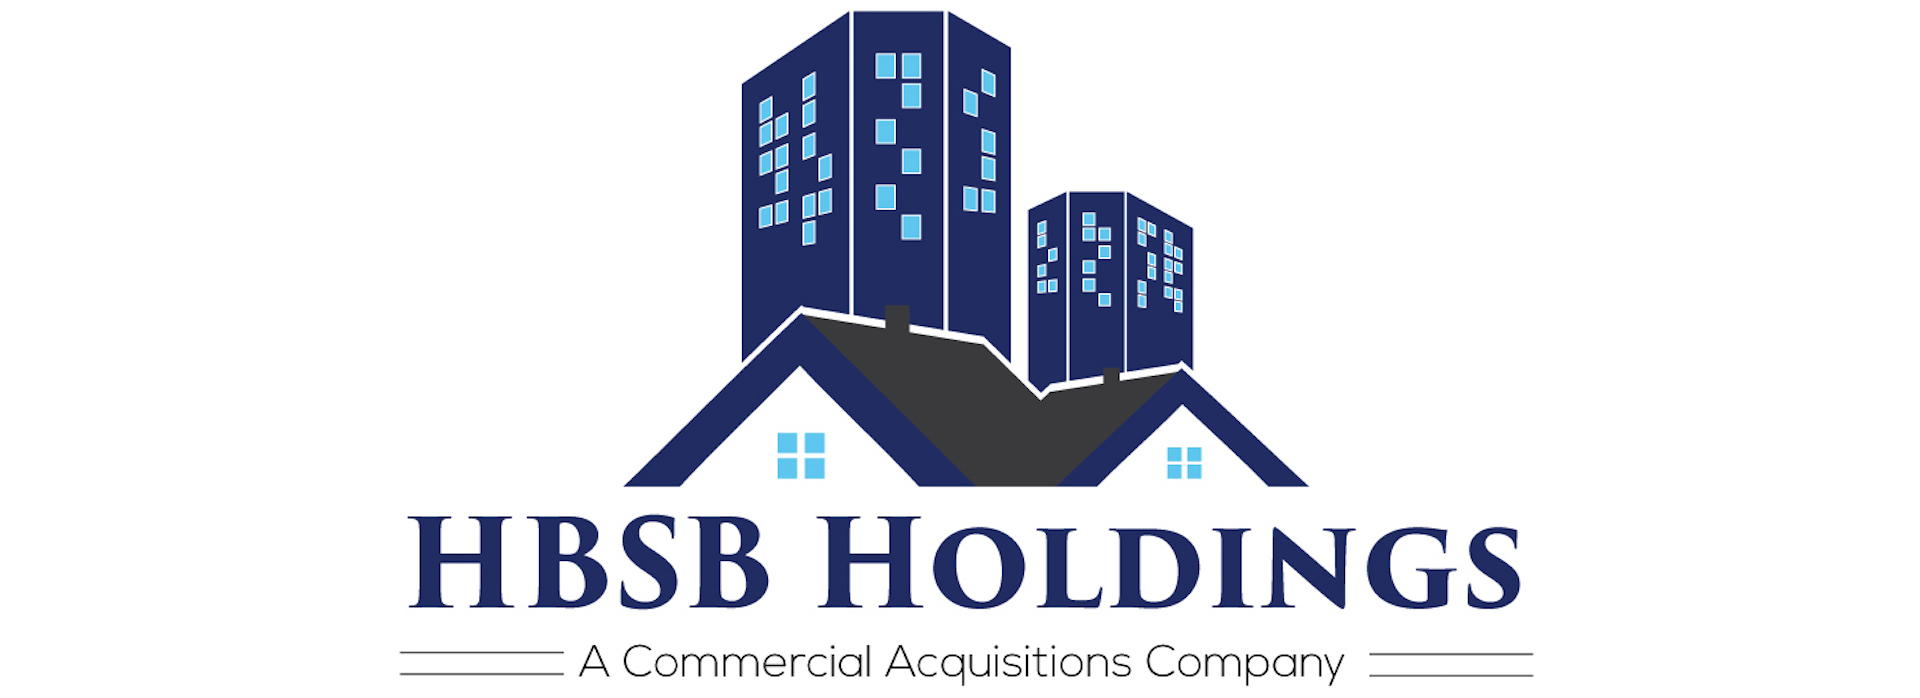 HBSB Holdings, LLC